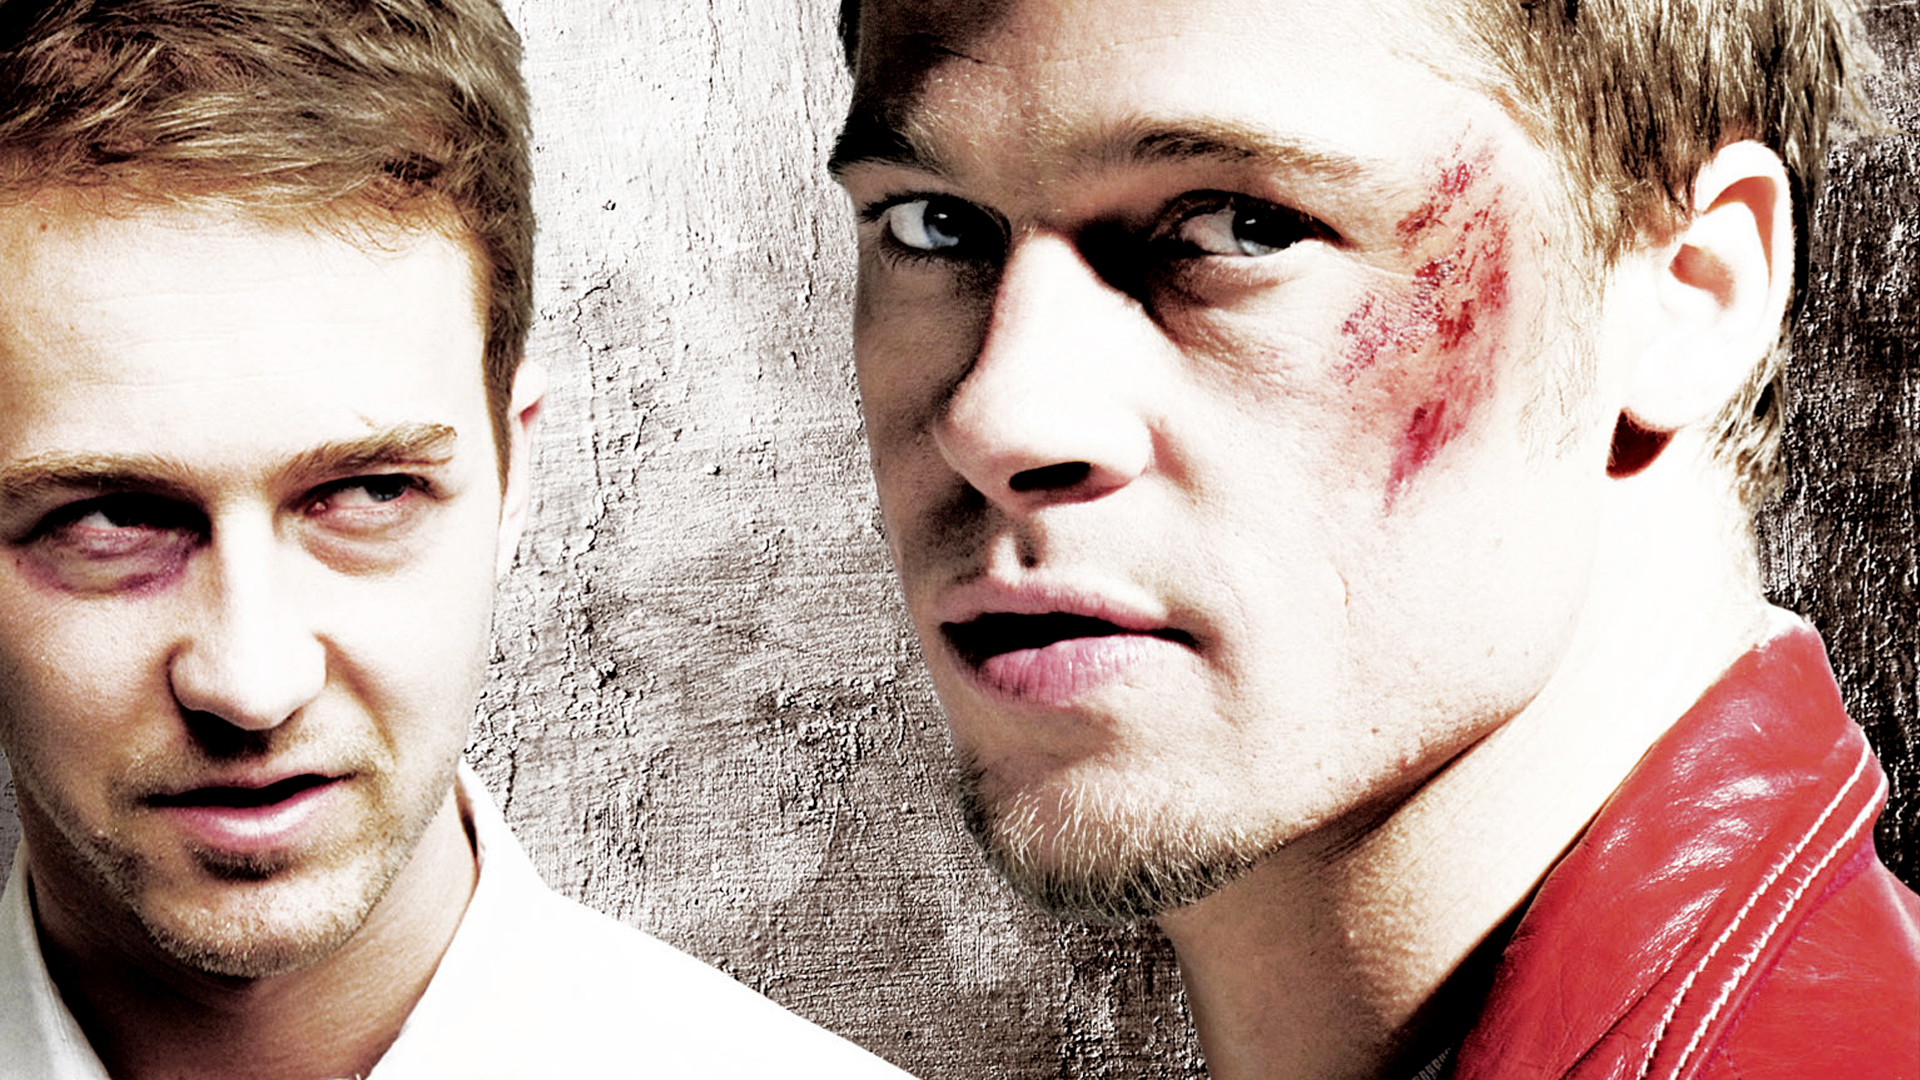 Fight Club Wallpapers, Pictures, Images